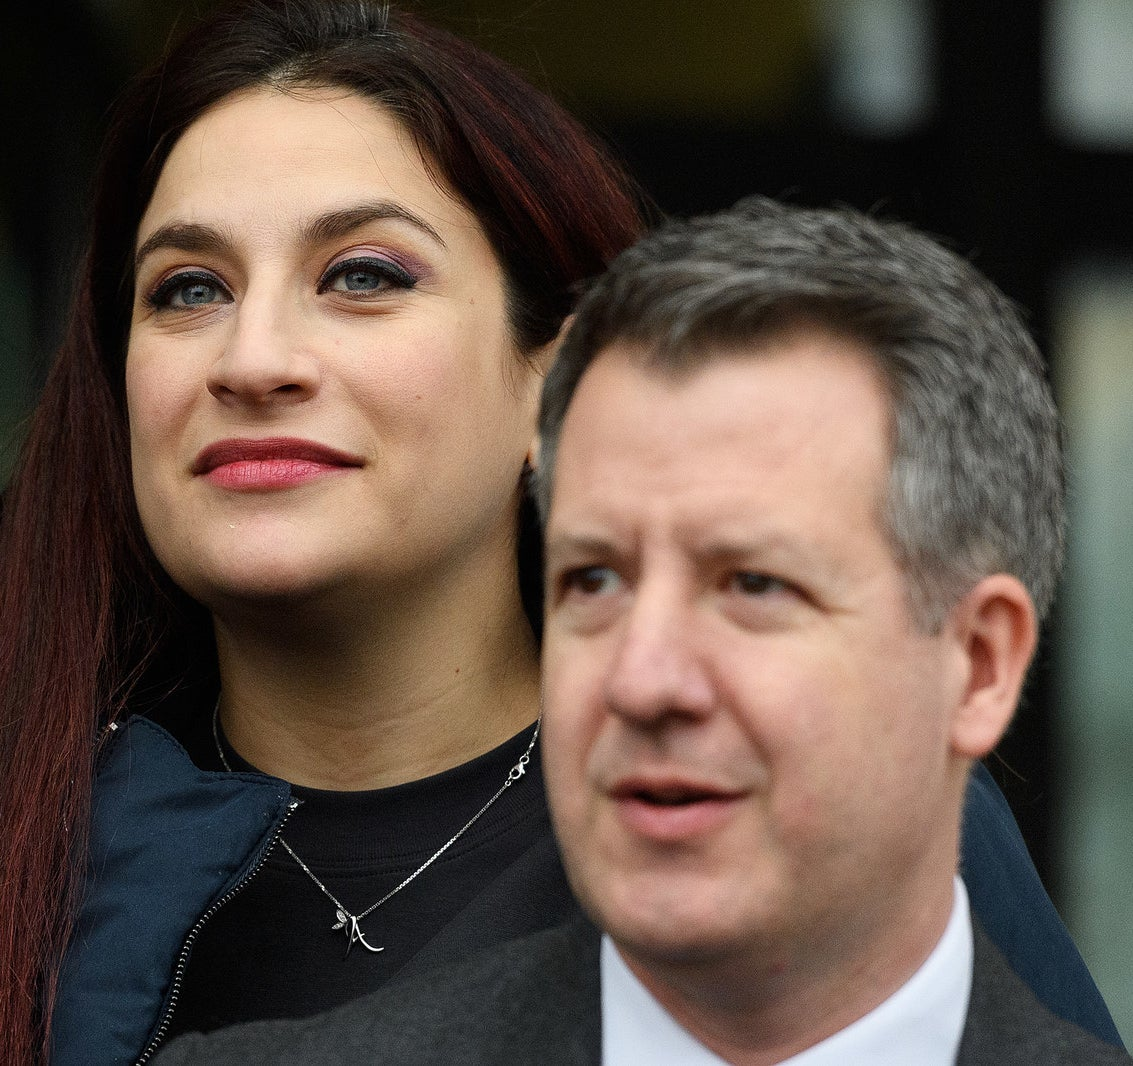 Labour MPs Luciana Berger and Chris Leslie